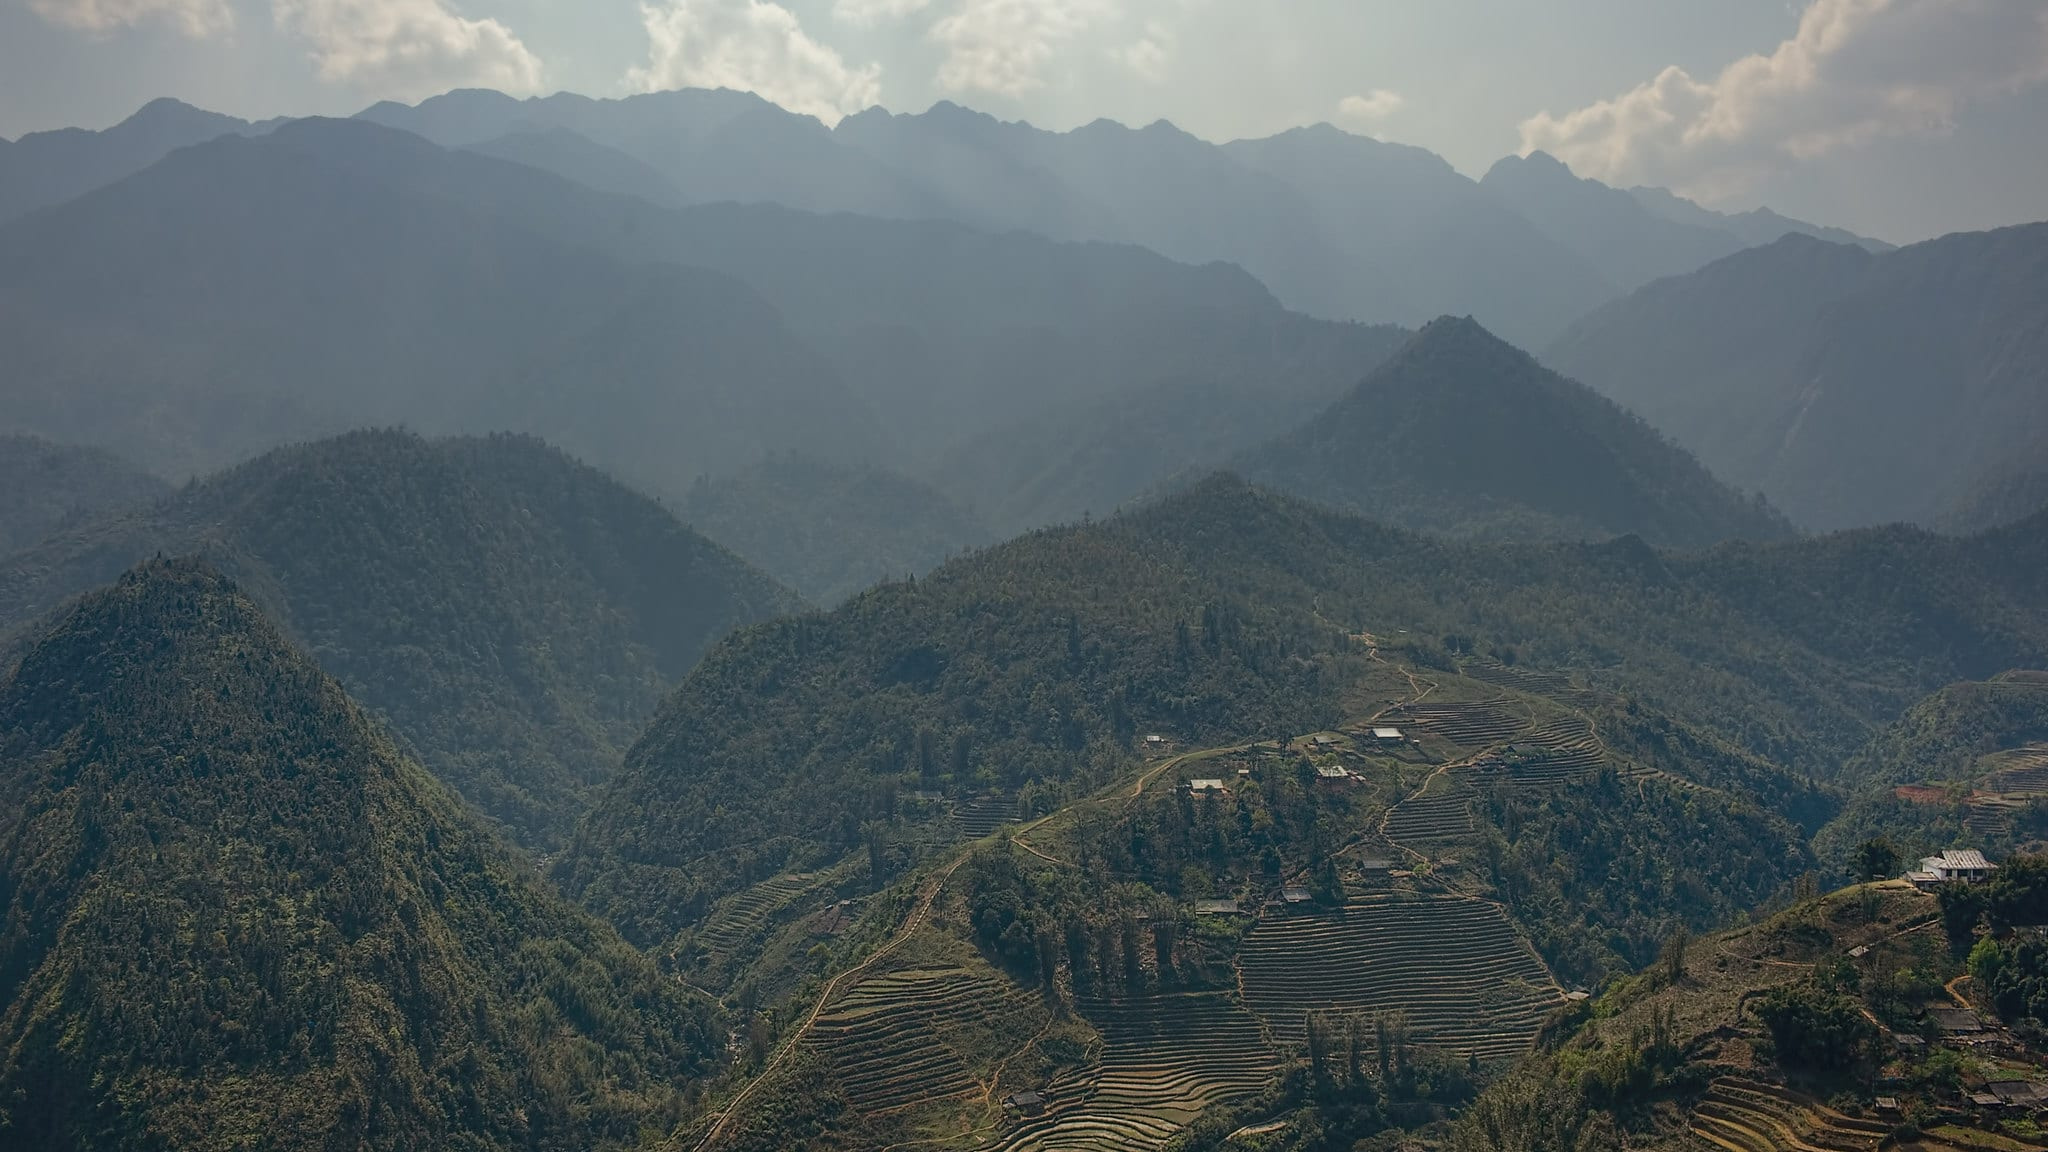 Image of the Hoang Lien Son Mountain Range in Vietnam